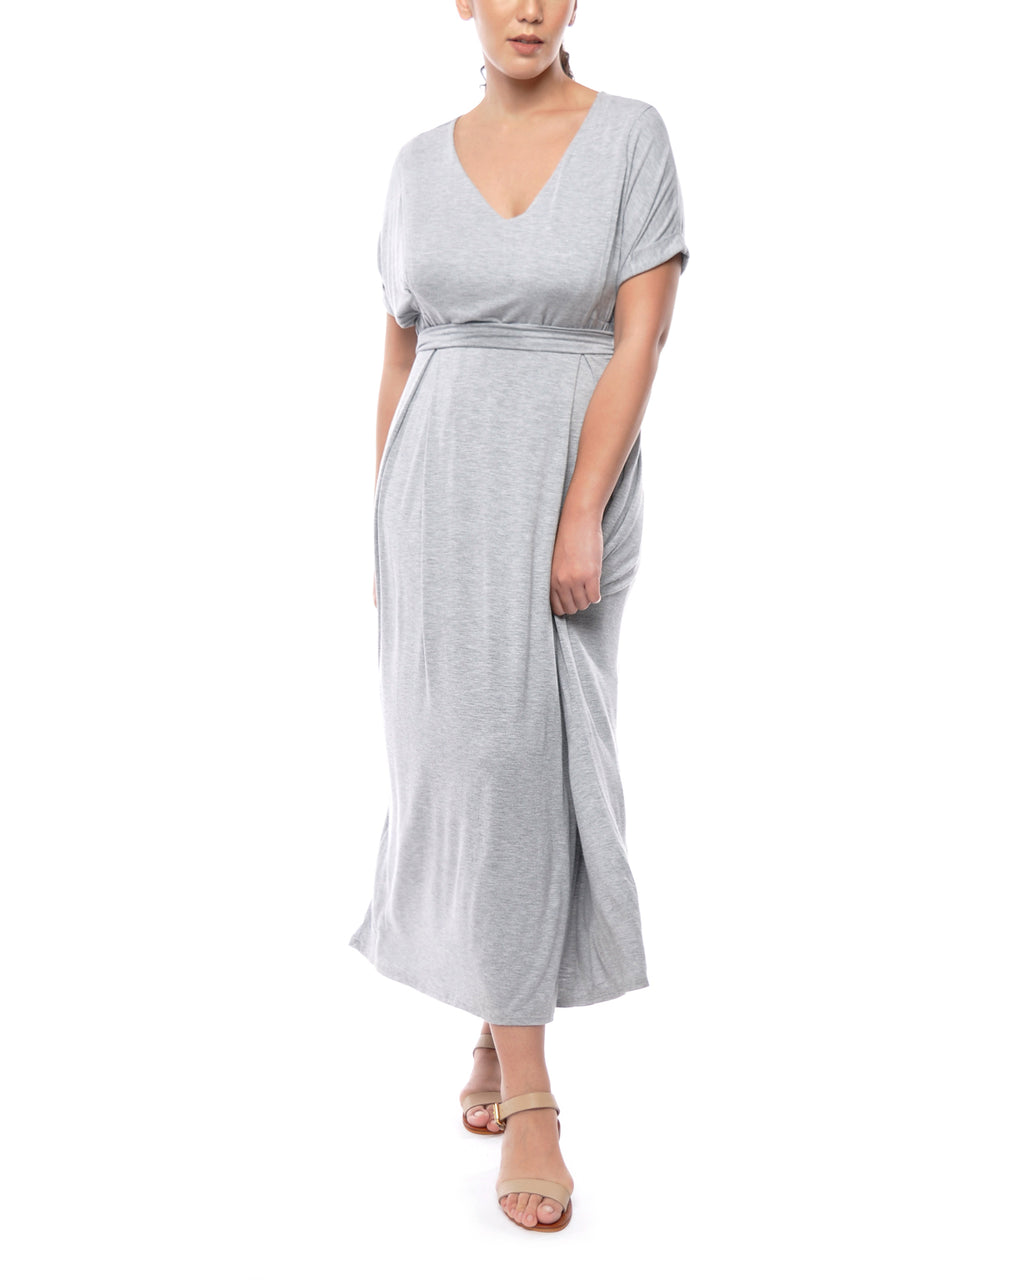 Malva Nursing Dress